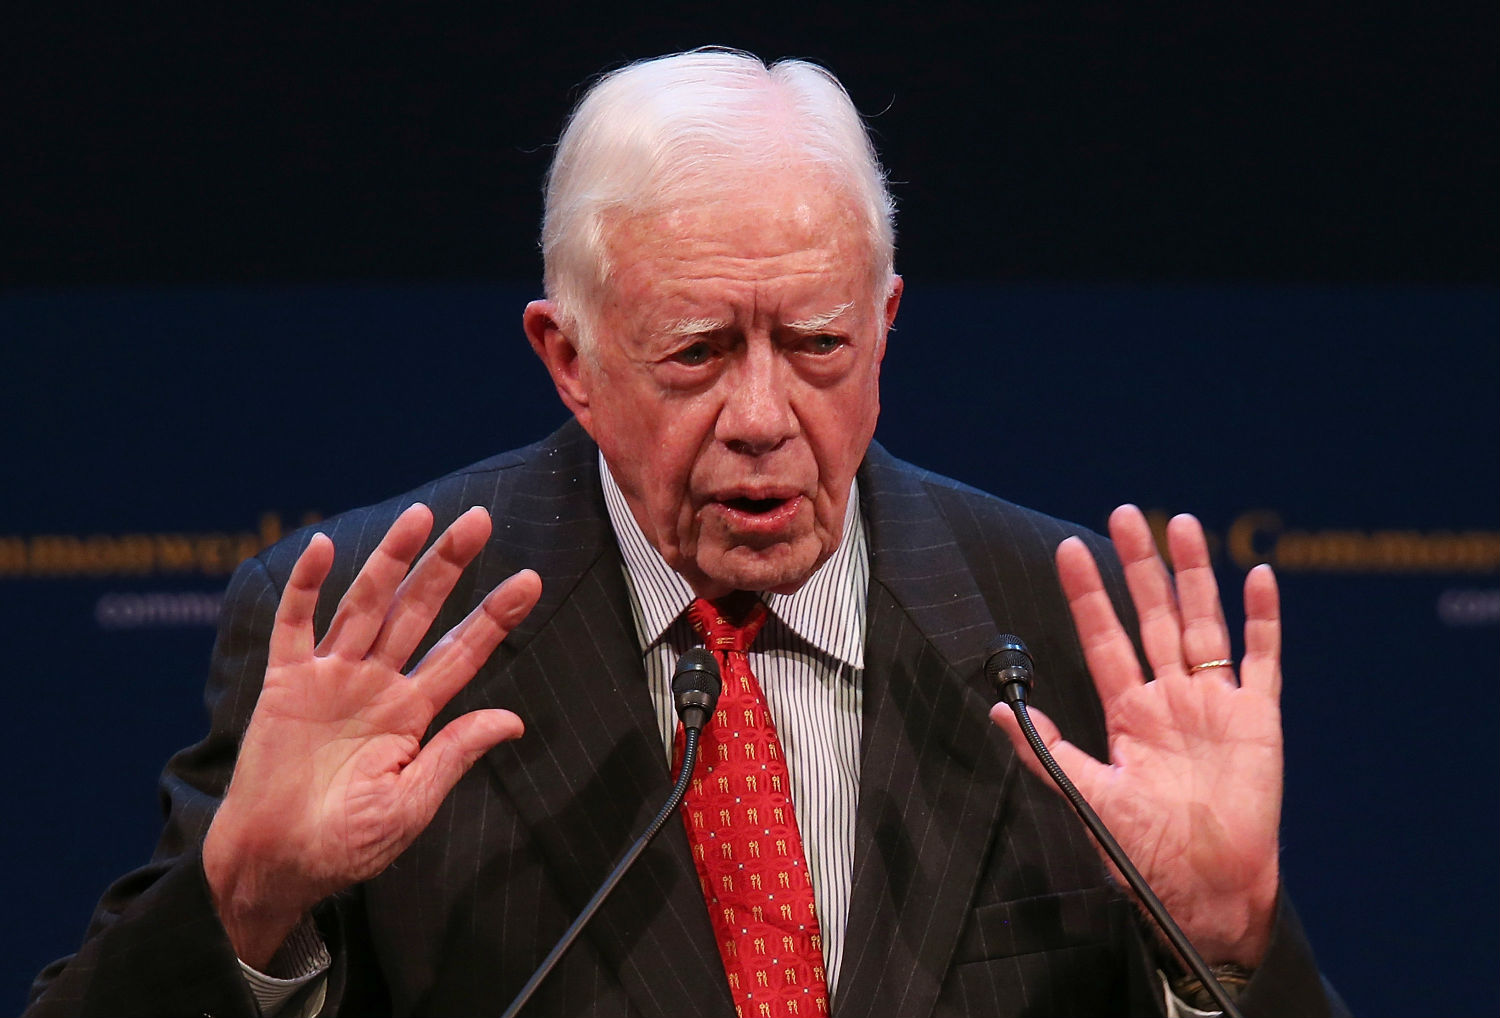 39th President of the United States and Founder of The Carter Center Jimmy Carter James Earl Carter Jr thirtyninth president of the United States was born